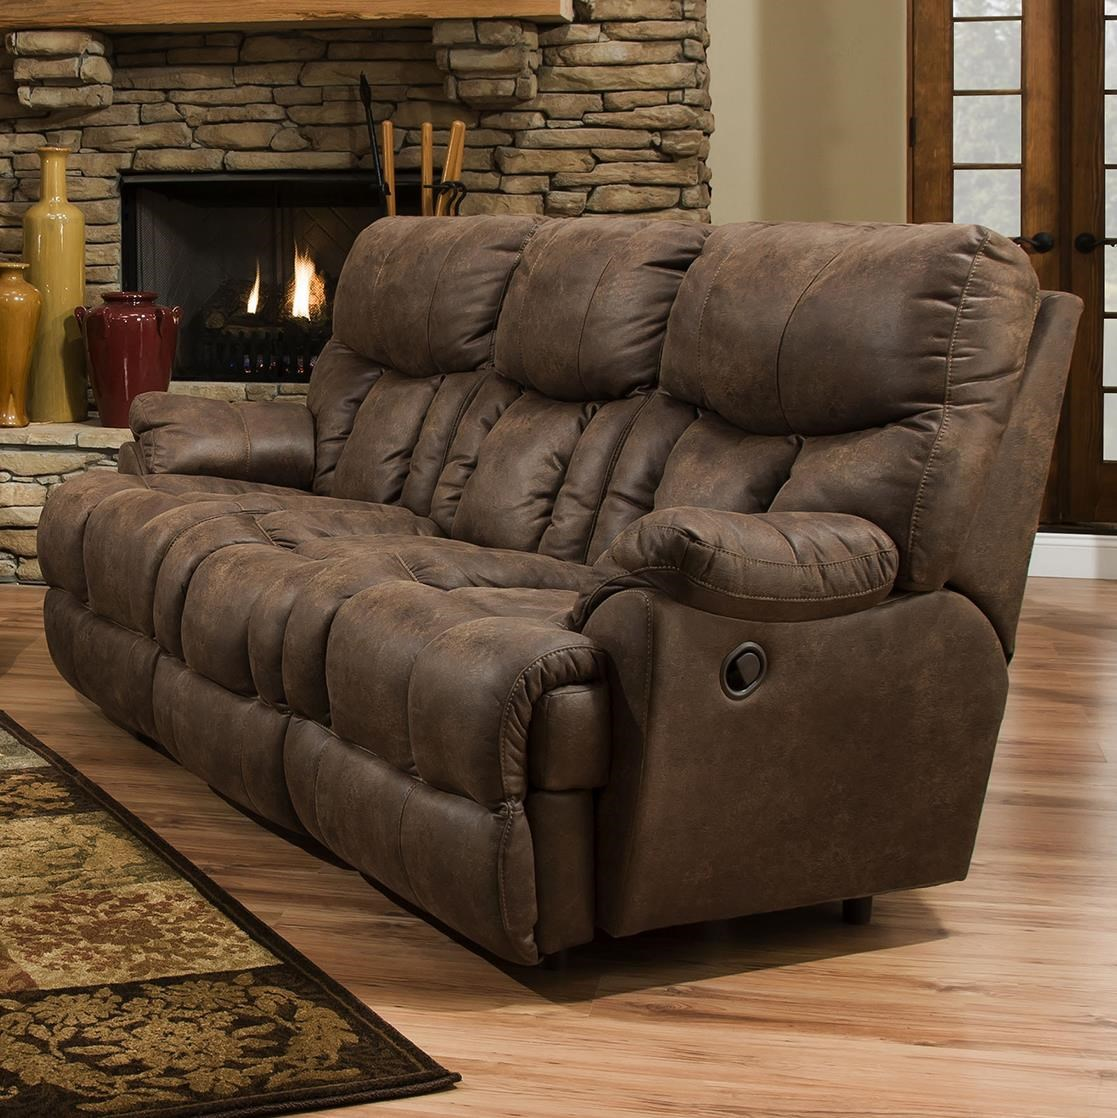 Genial Franklin Mammoth Reclining Sofa With Extra Tall And Wide Seats